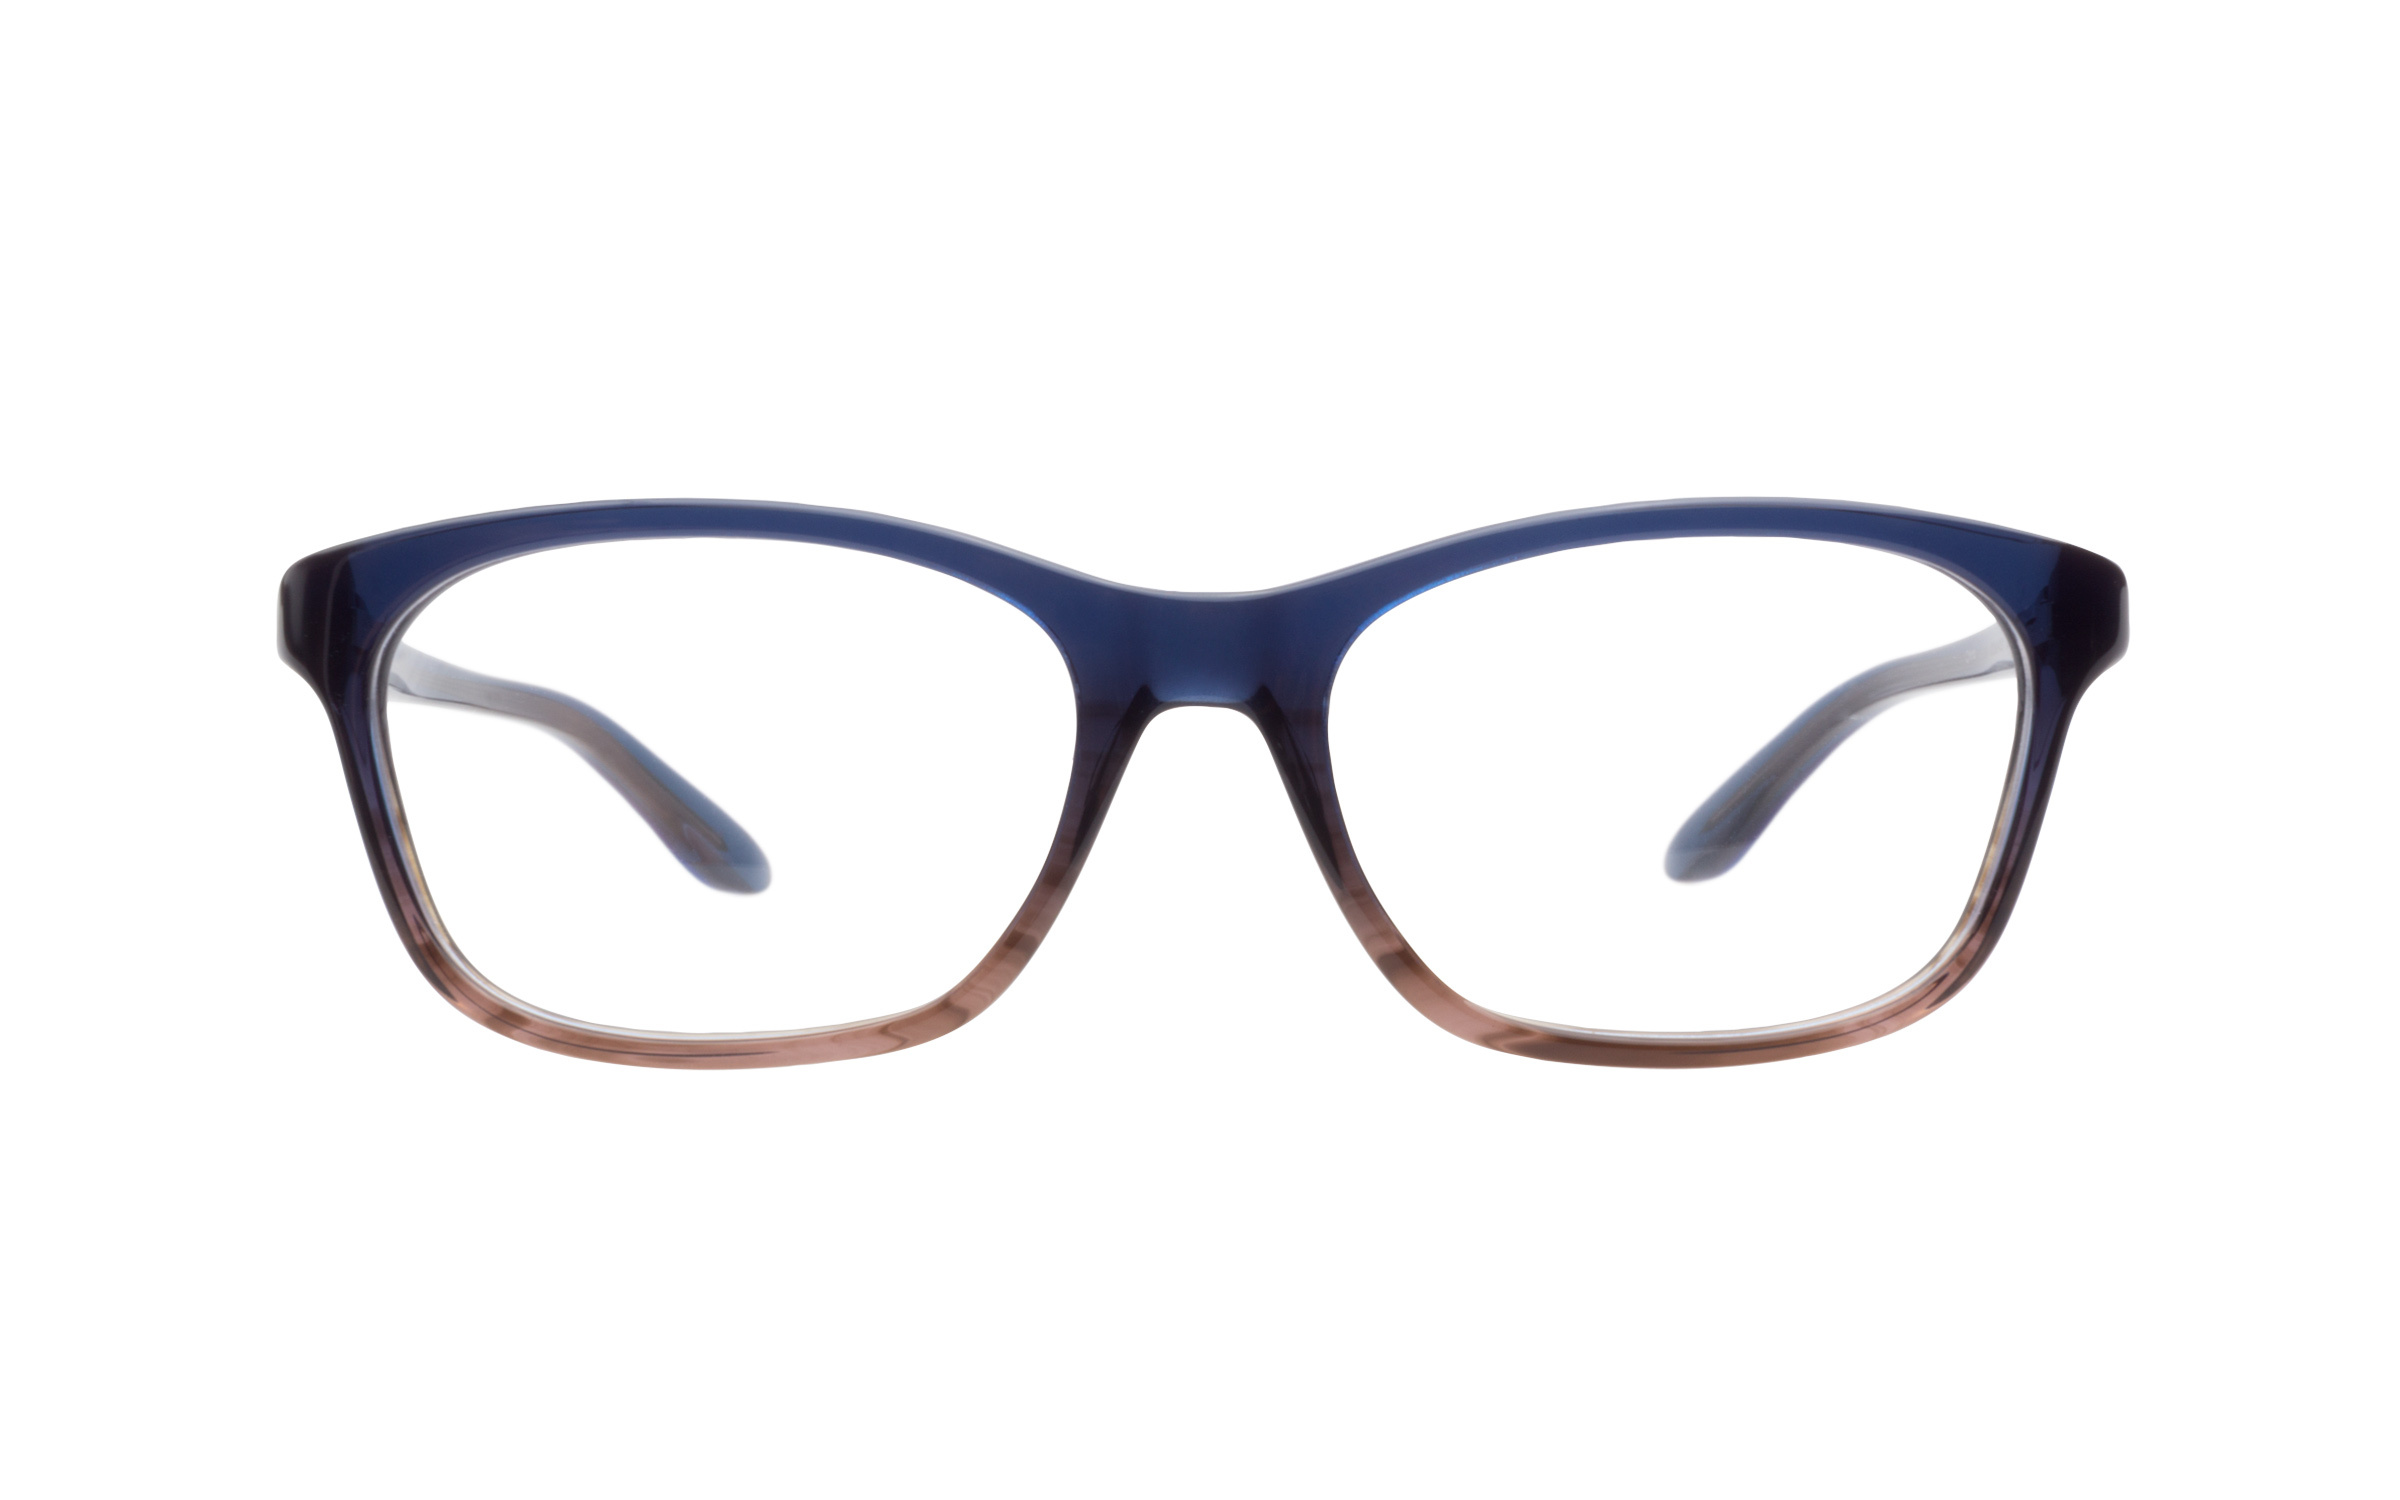 http://www.coastal.com/ - Luxottica Oakley Taunt OX1091 252 Eyeglasses and Frame in Fade Blue/Brown | Acetate – Online Coastal